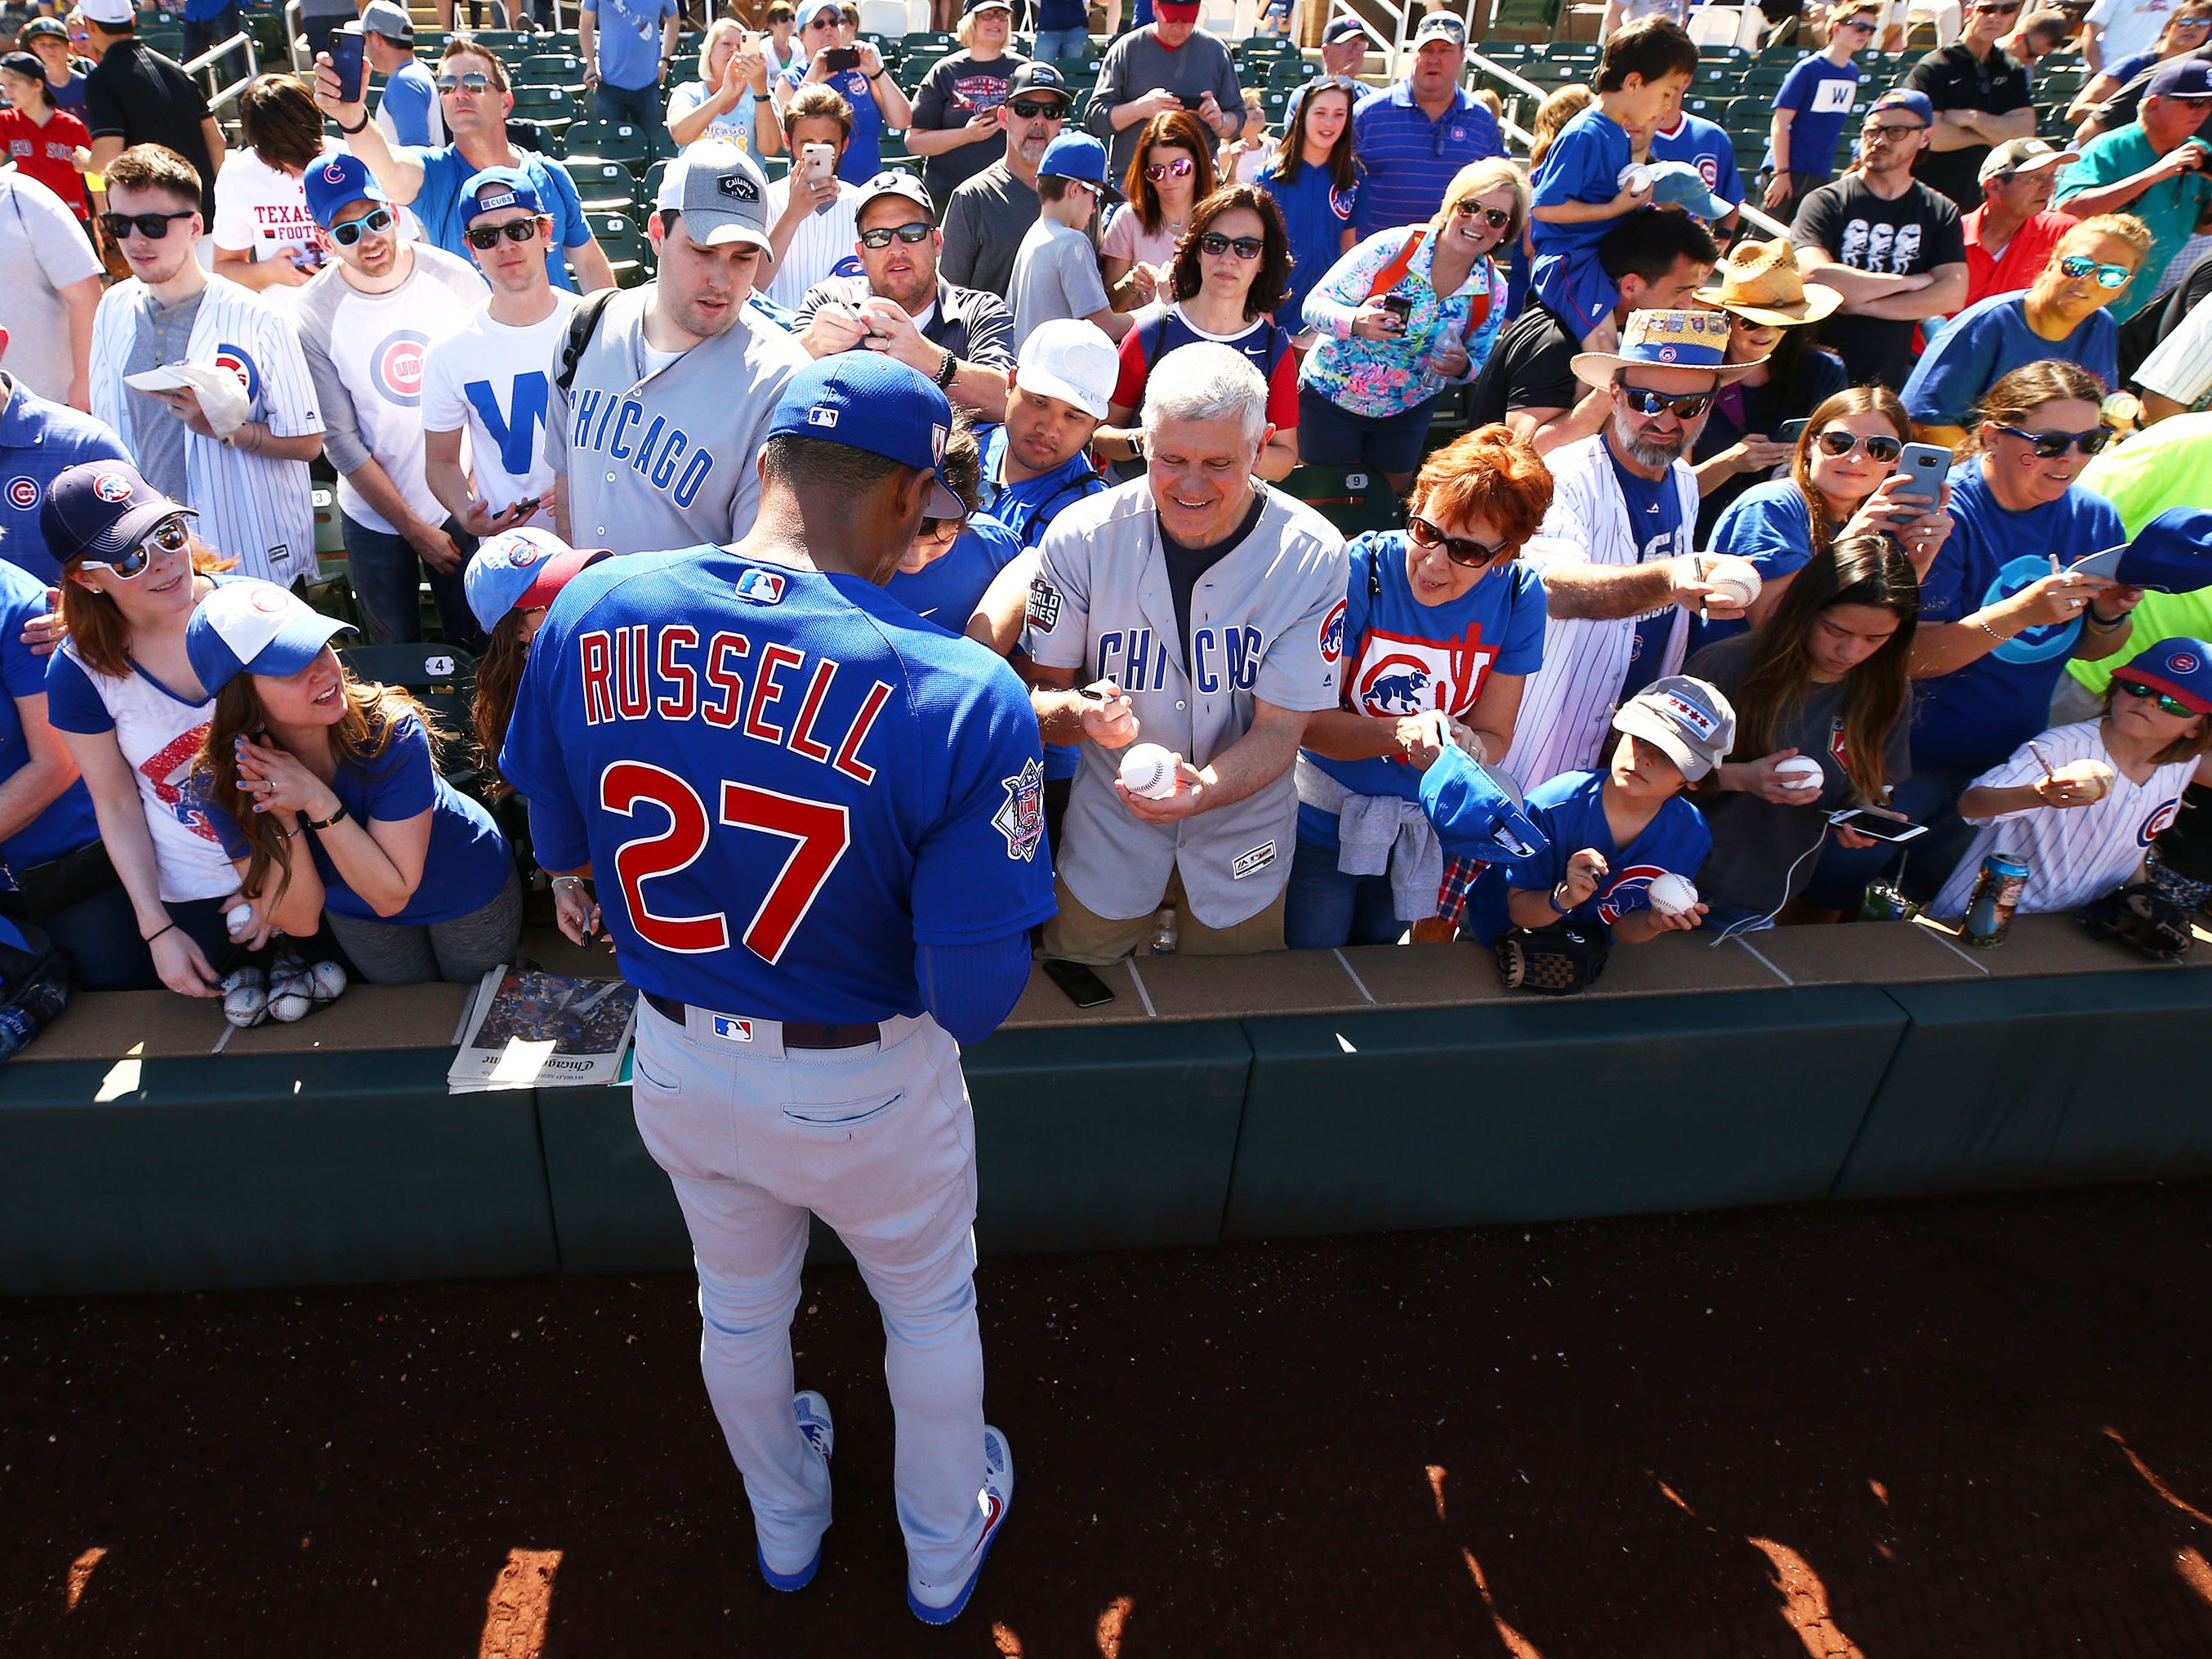 Chicago Cubs shortstop Addison Russell signs autographs before playing the Arizona Diamondbacks during a spring training game on Mar. 1, 2019 at Salt River Fields in Scottsdale, Ariz.